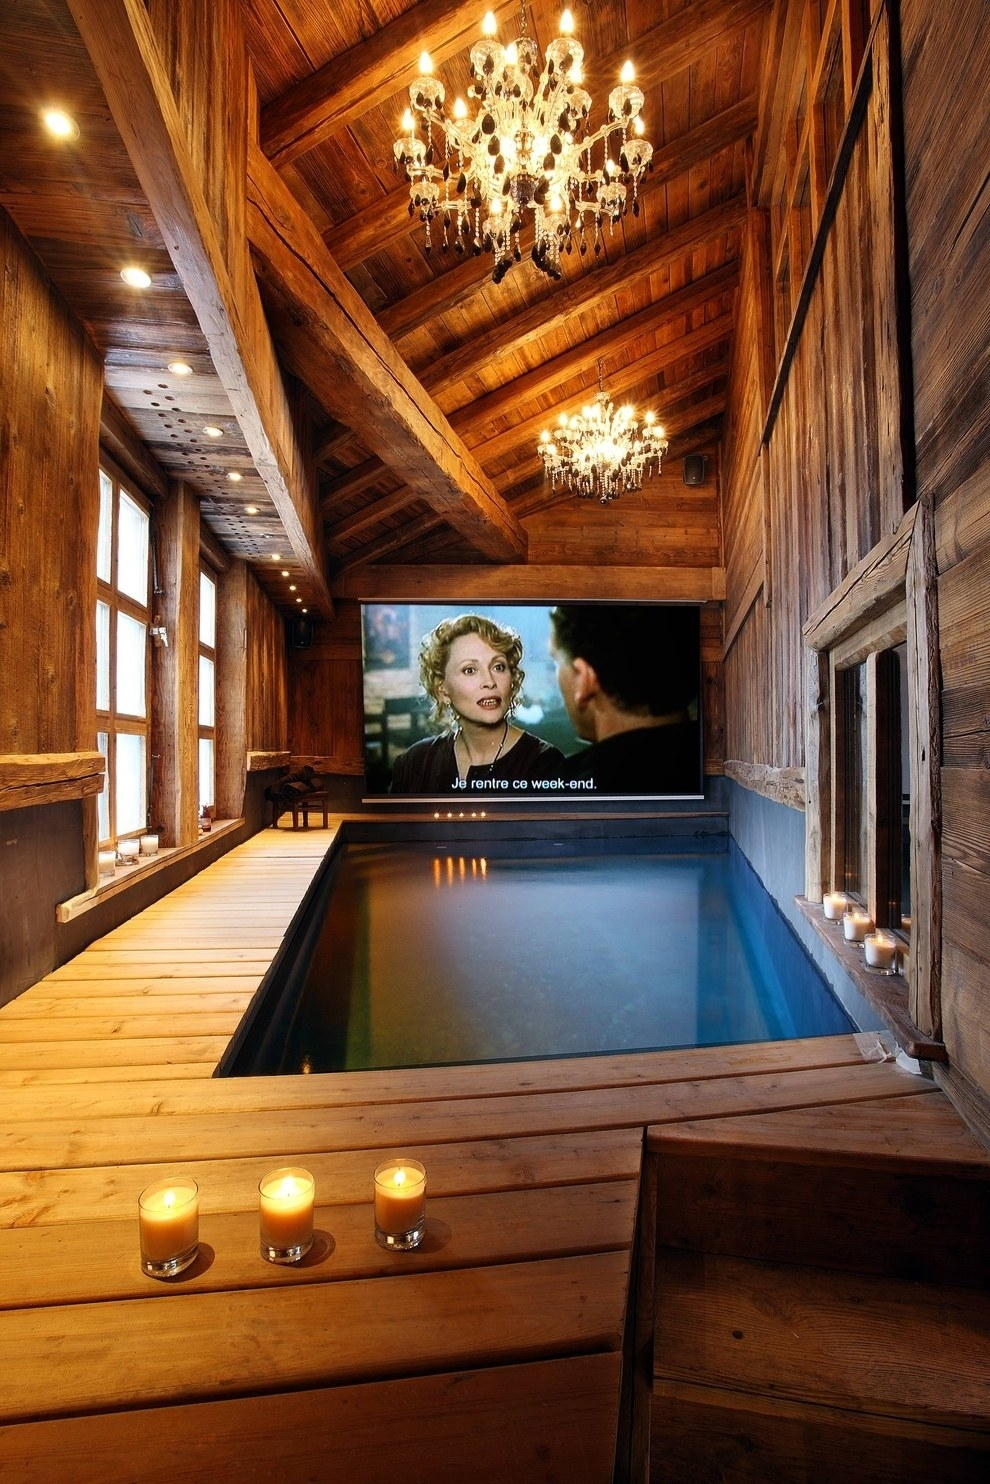 But YOU GUYS, I can watch Real Housewives in the pool! See more photos (and rent it!) on The Chalet Collection.